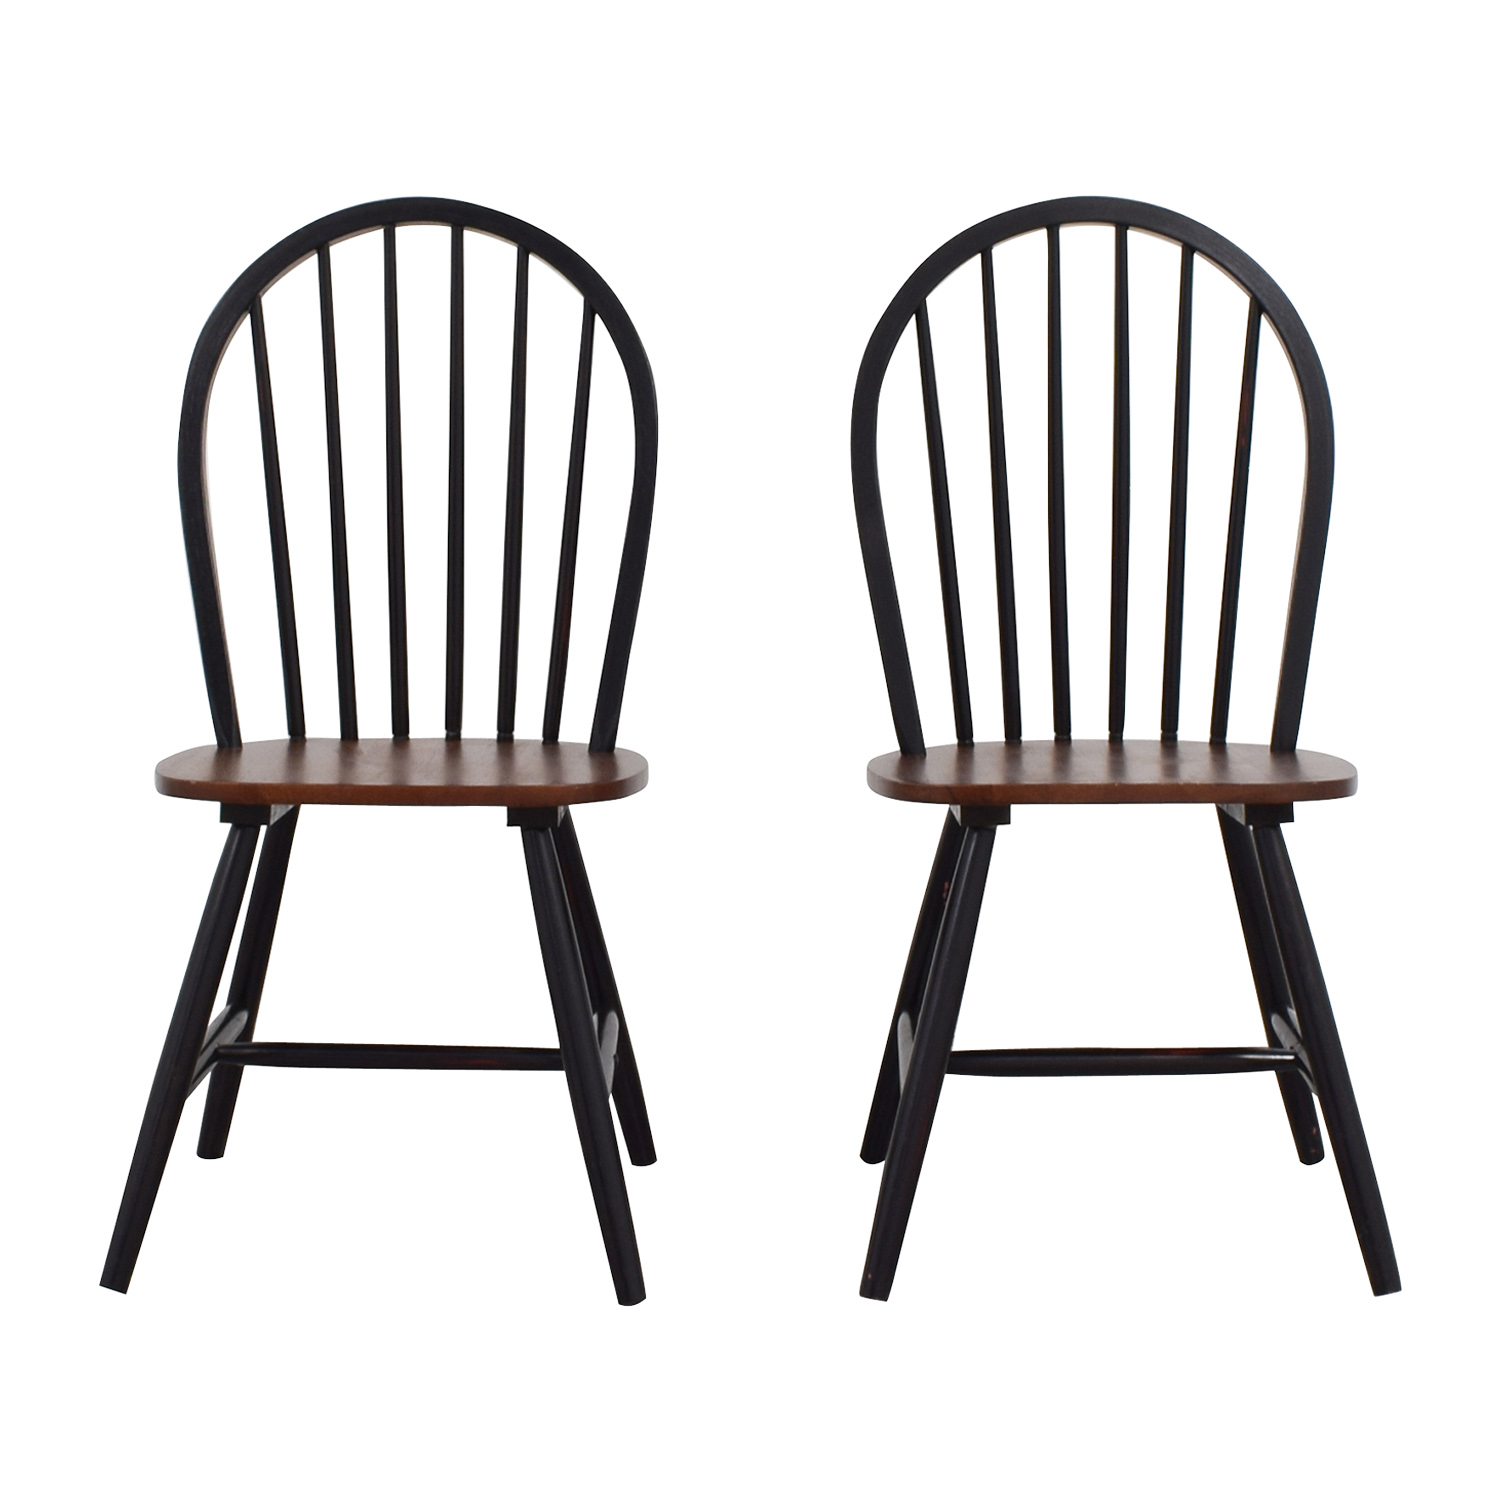 Two-Tone Wood Dining Chairs nyc